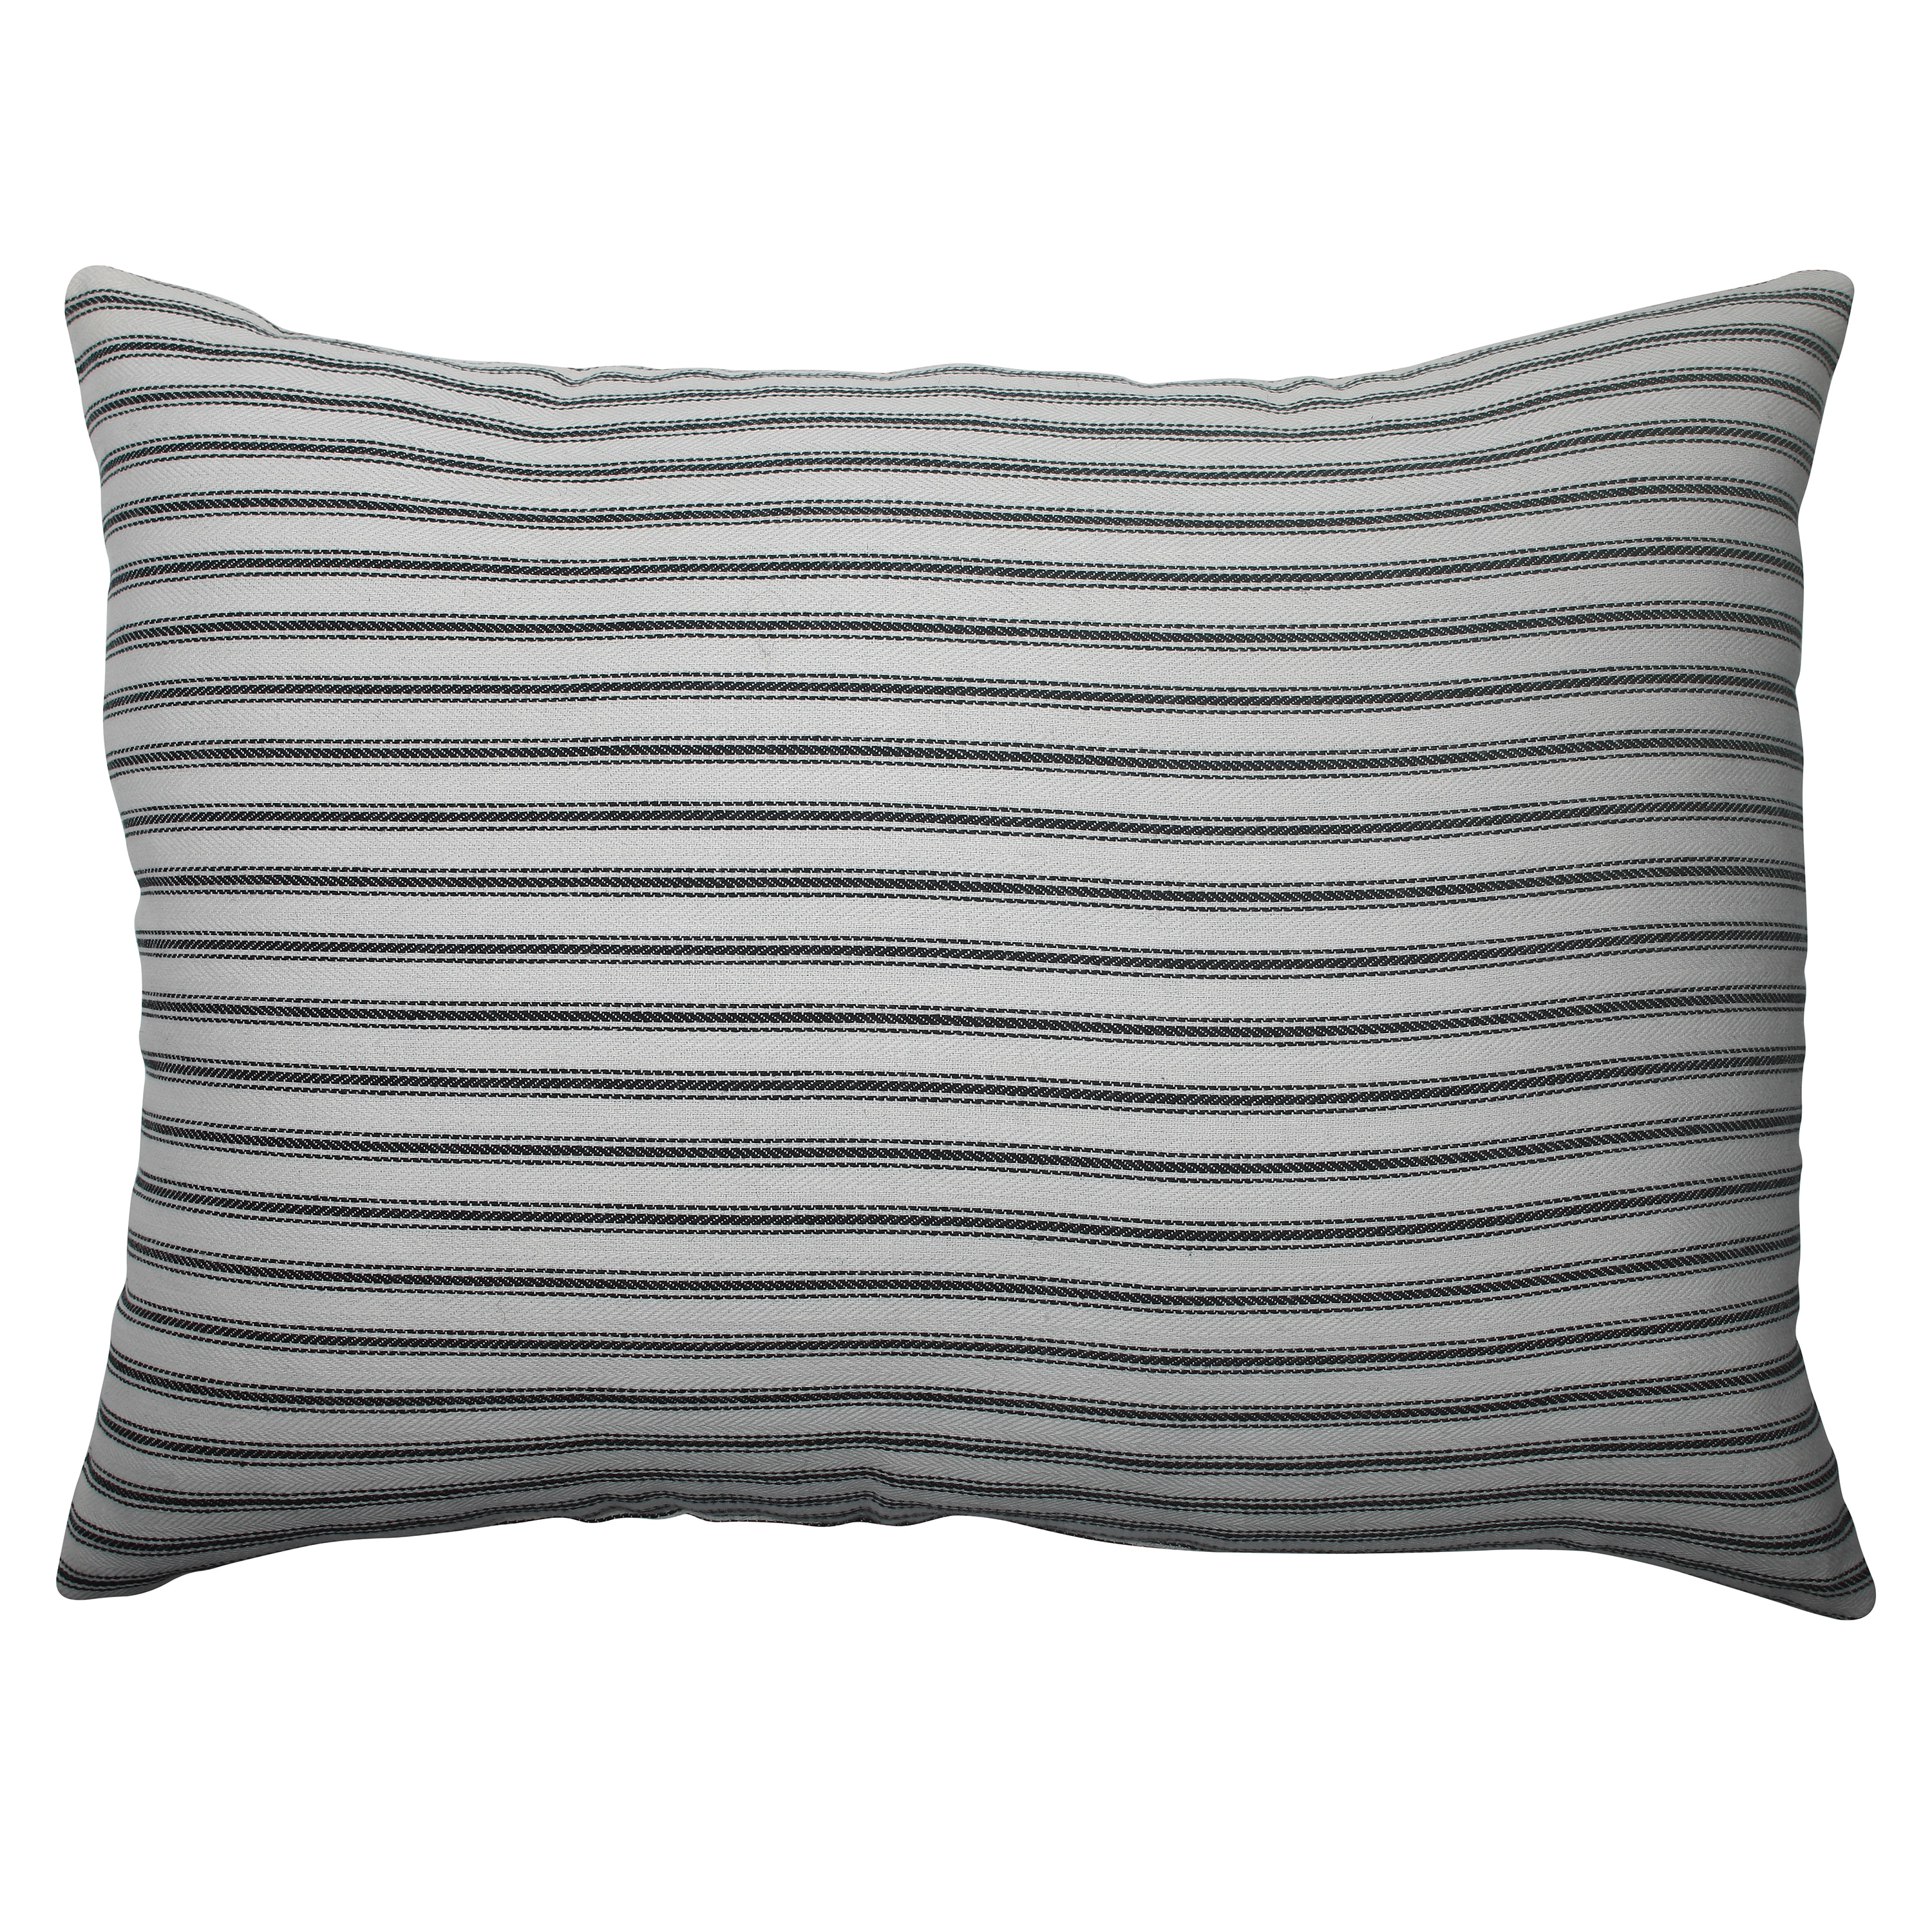 Pillow Perfect Ticking Stripe Cream Rectangle Throw Pillow at Sears.com